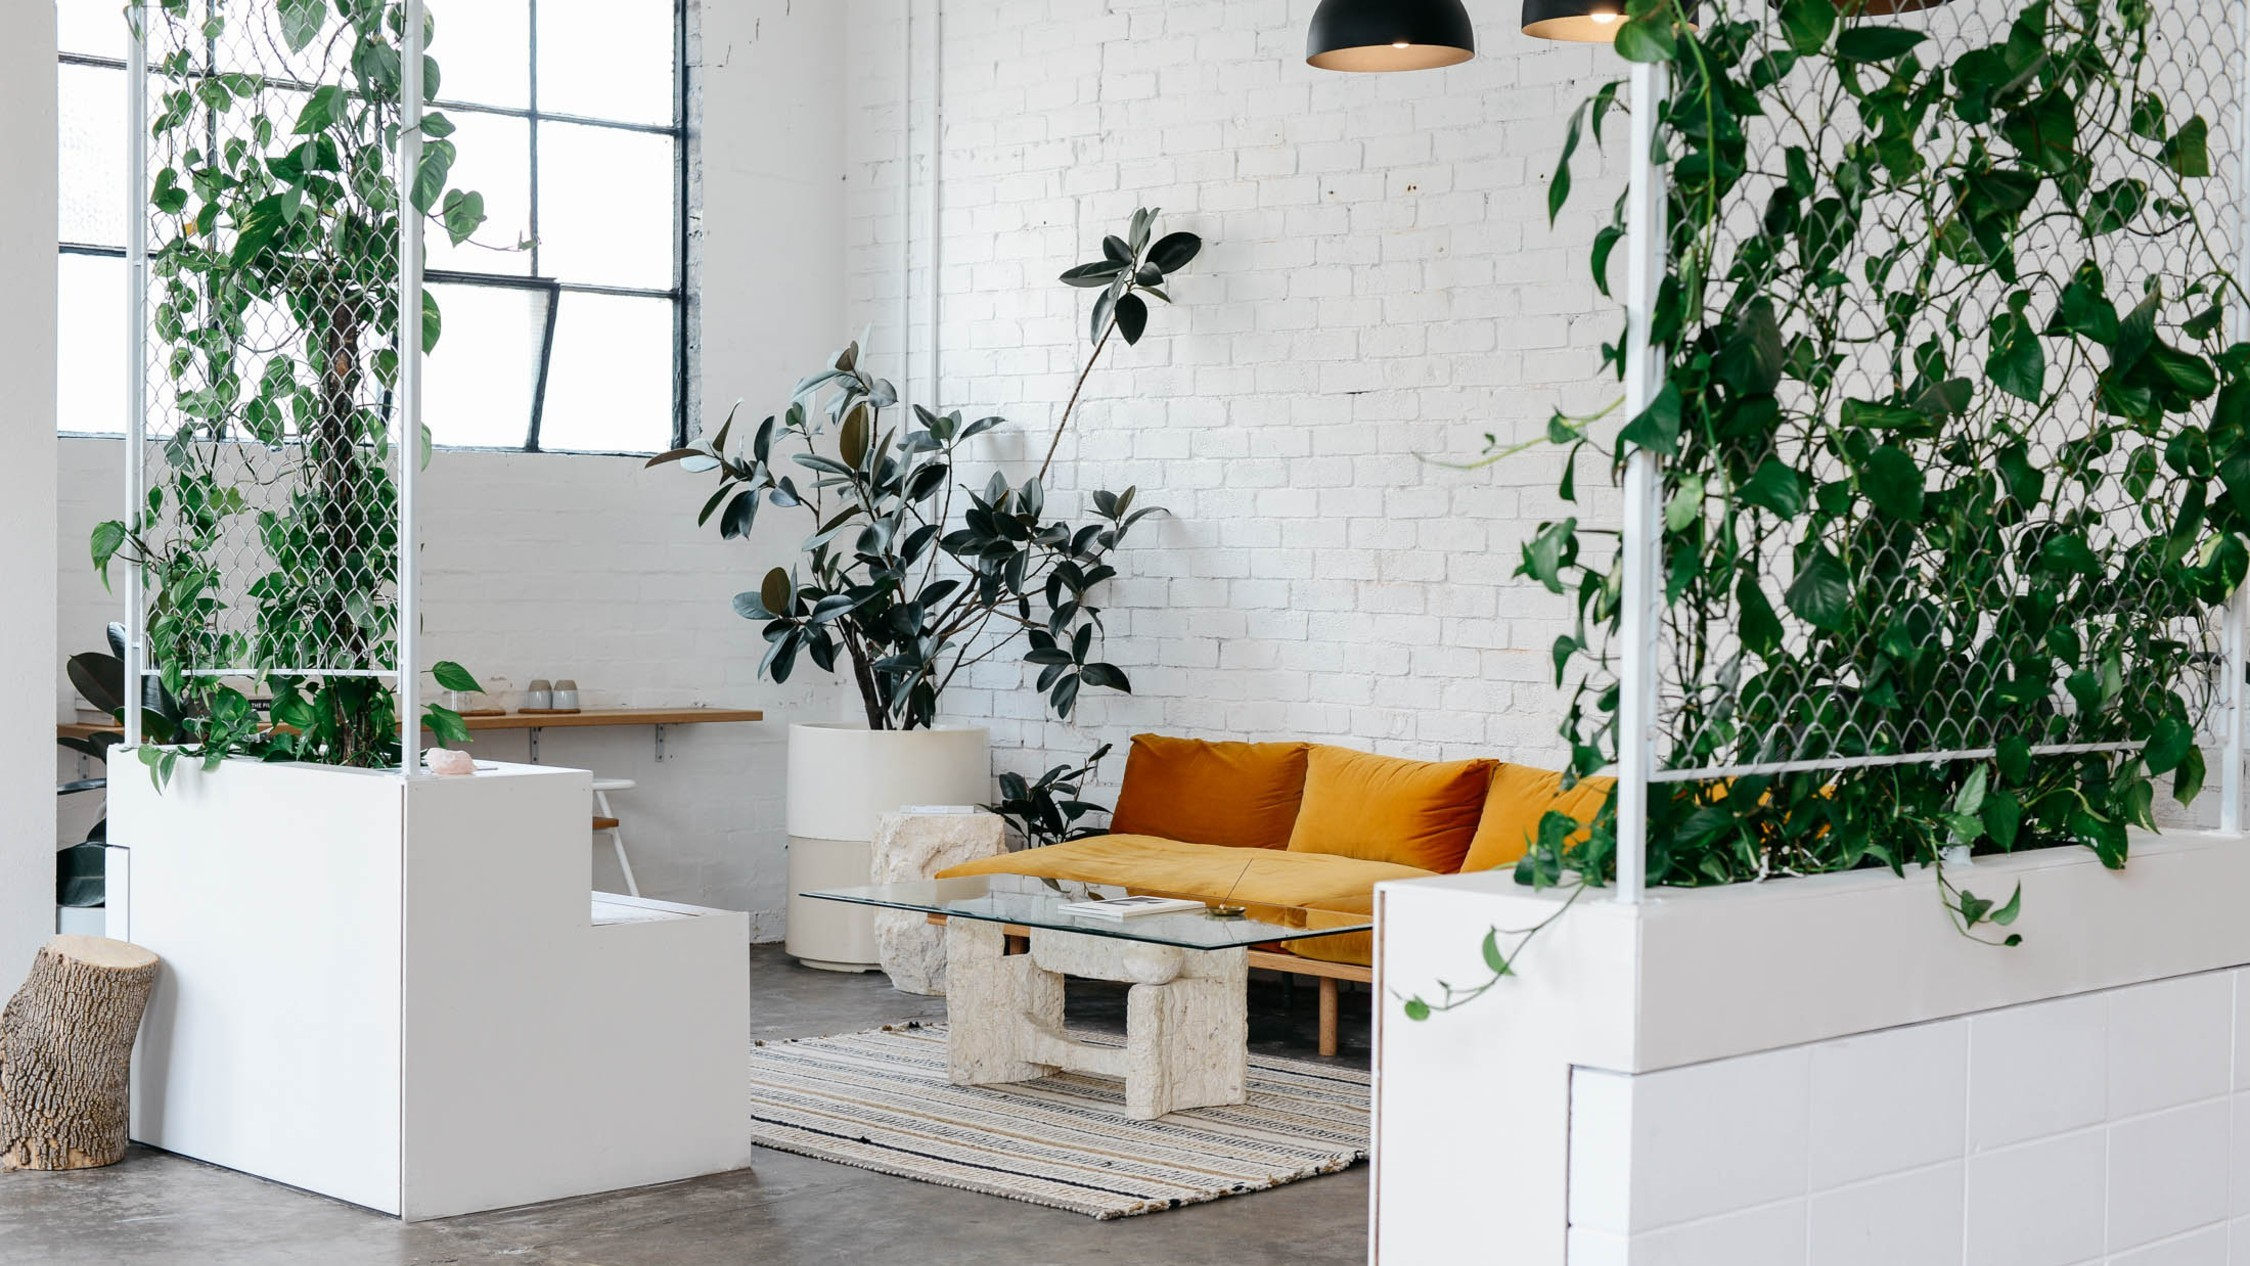 A waiting room with white walls, plants and a mustard yellow couch.